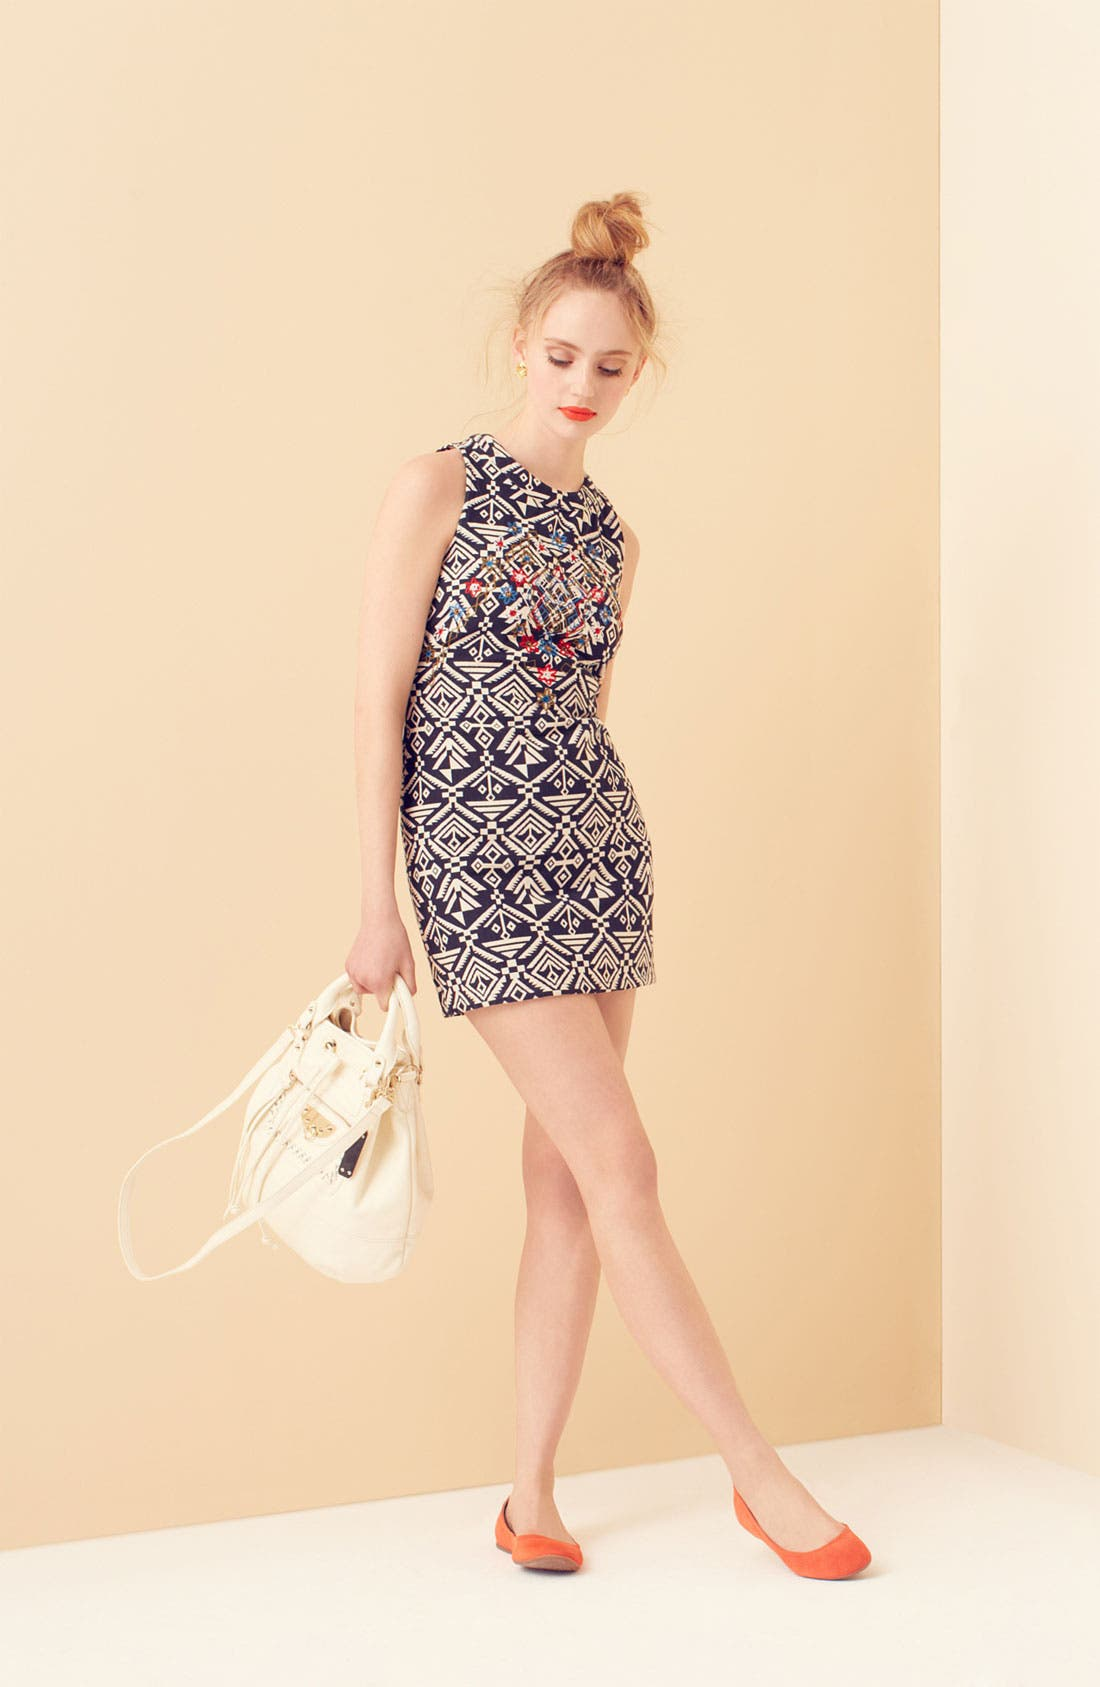 Main Image - ASTR Embroidered Minidress & Sam Edelman Flat